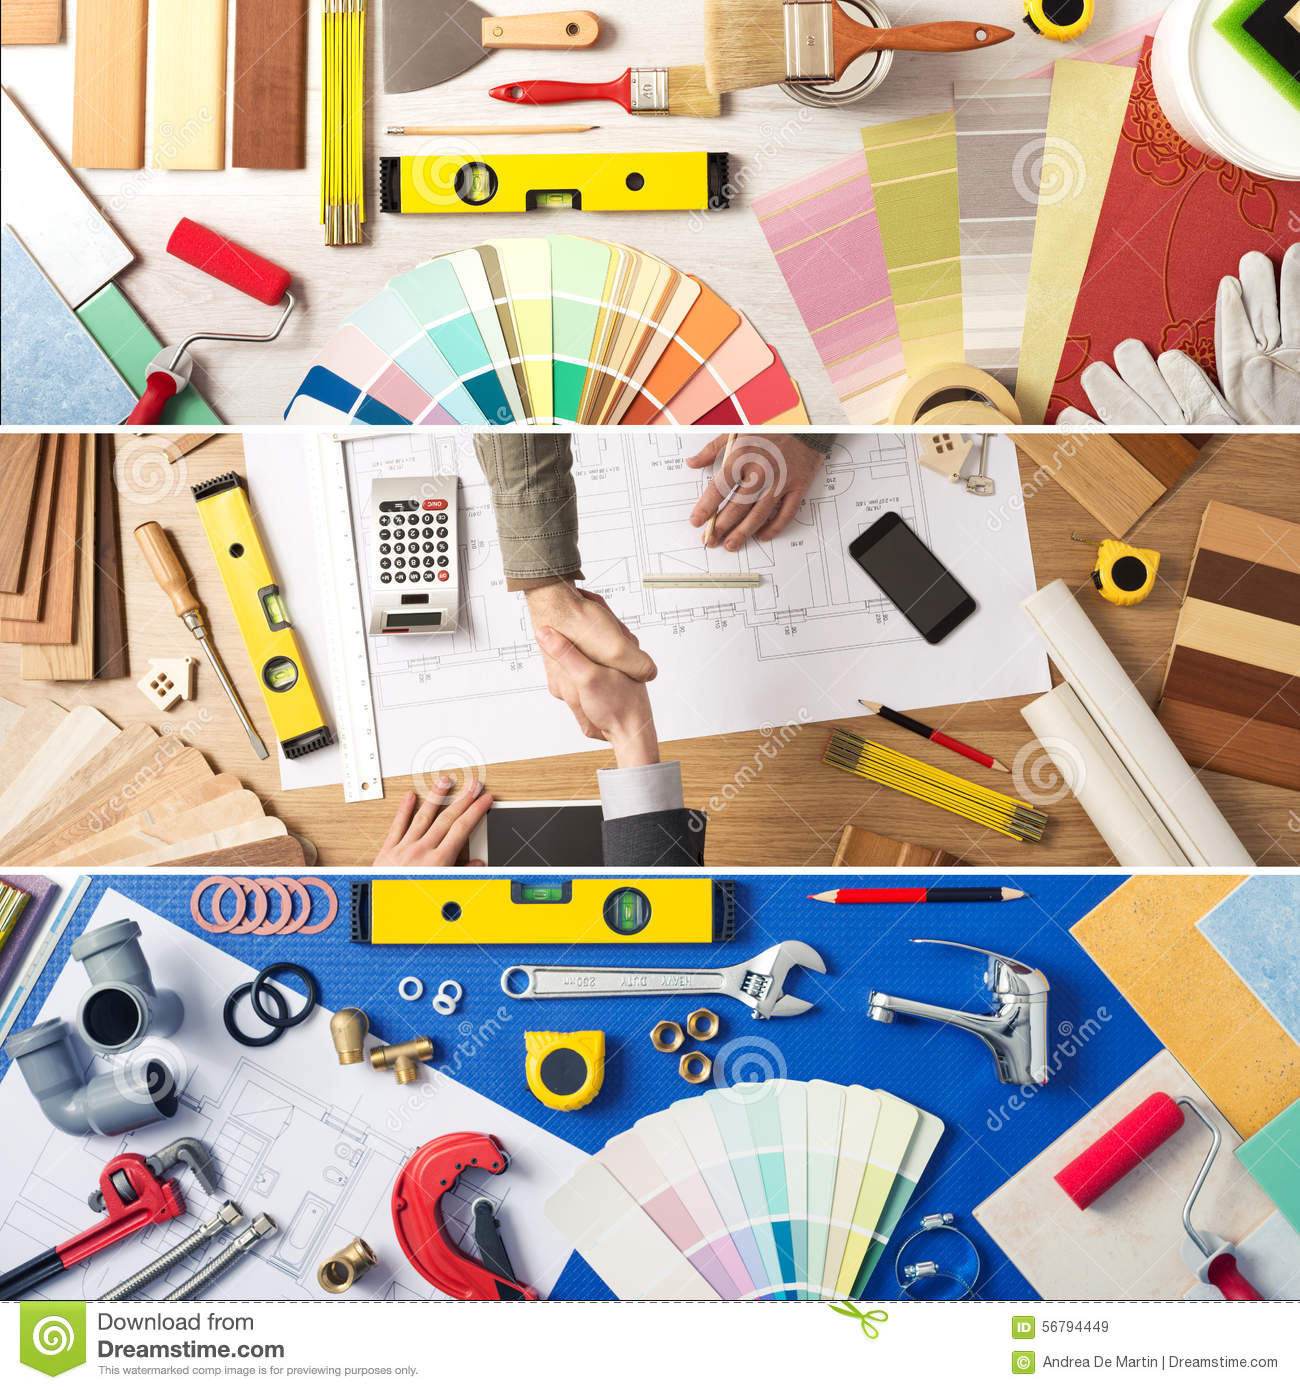 DIY And Home Improvement Stock Photo - Image: 56794449